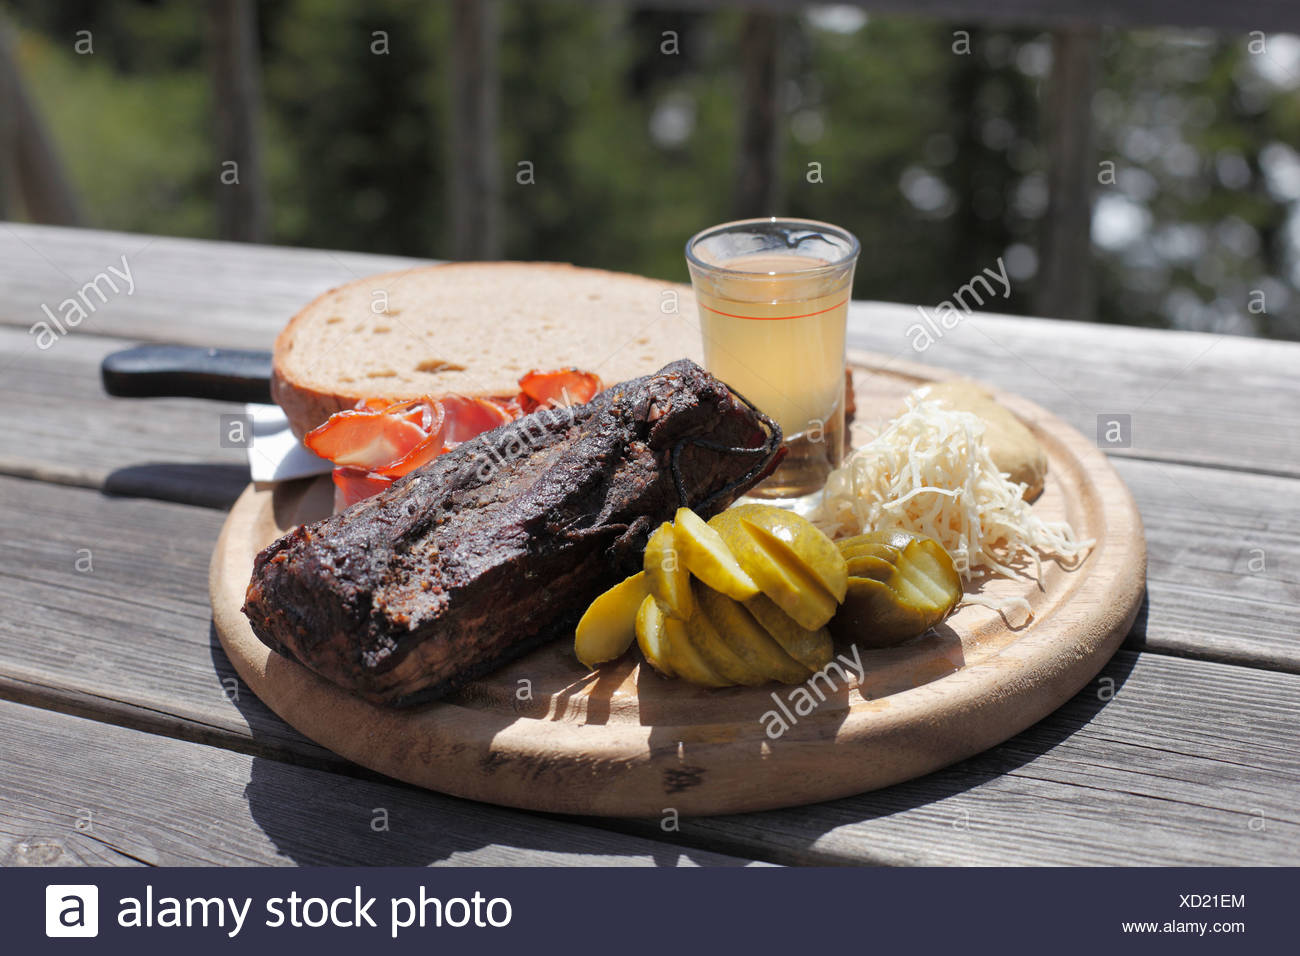 Bacon snack at Gfoelleralm restaurant, Upper Stryria, Styria, Austria, Europe - Stock Image